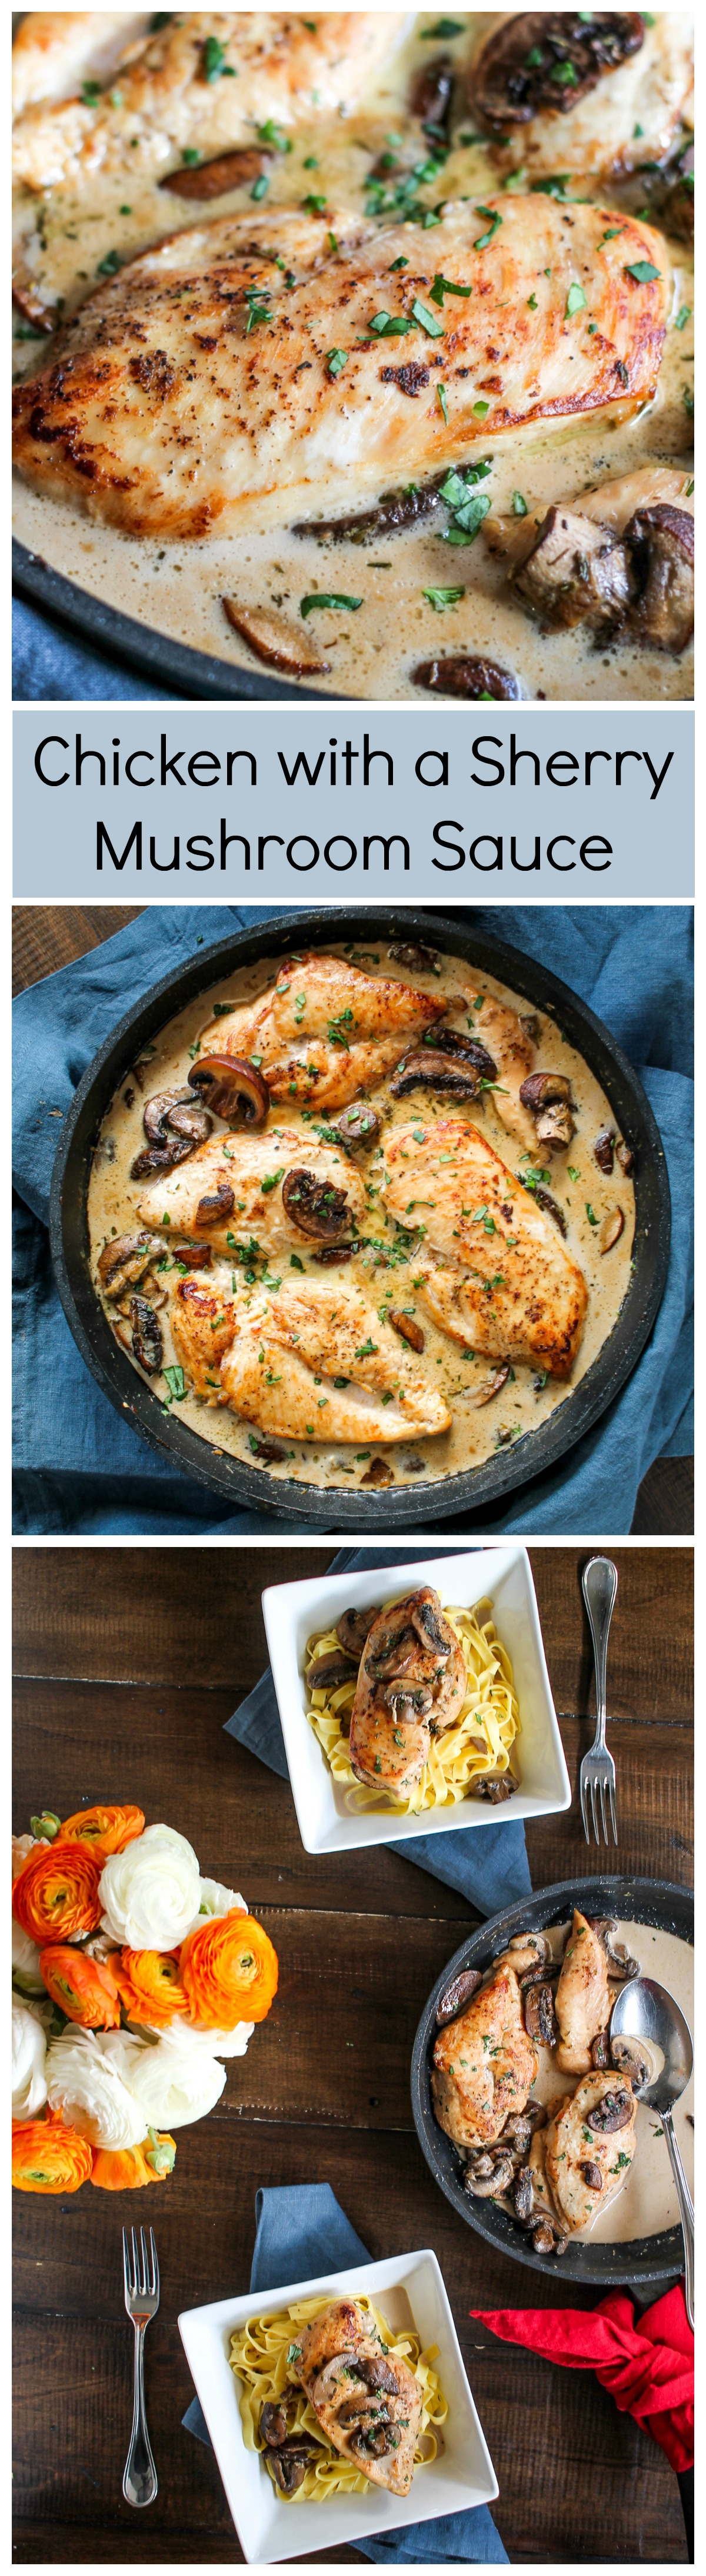 Chicken with a Sherry Mushroom Sauce - an elegant meal you can make in a hour!